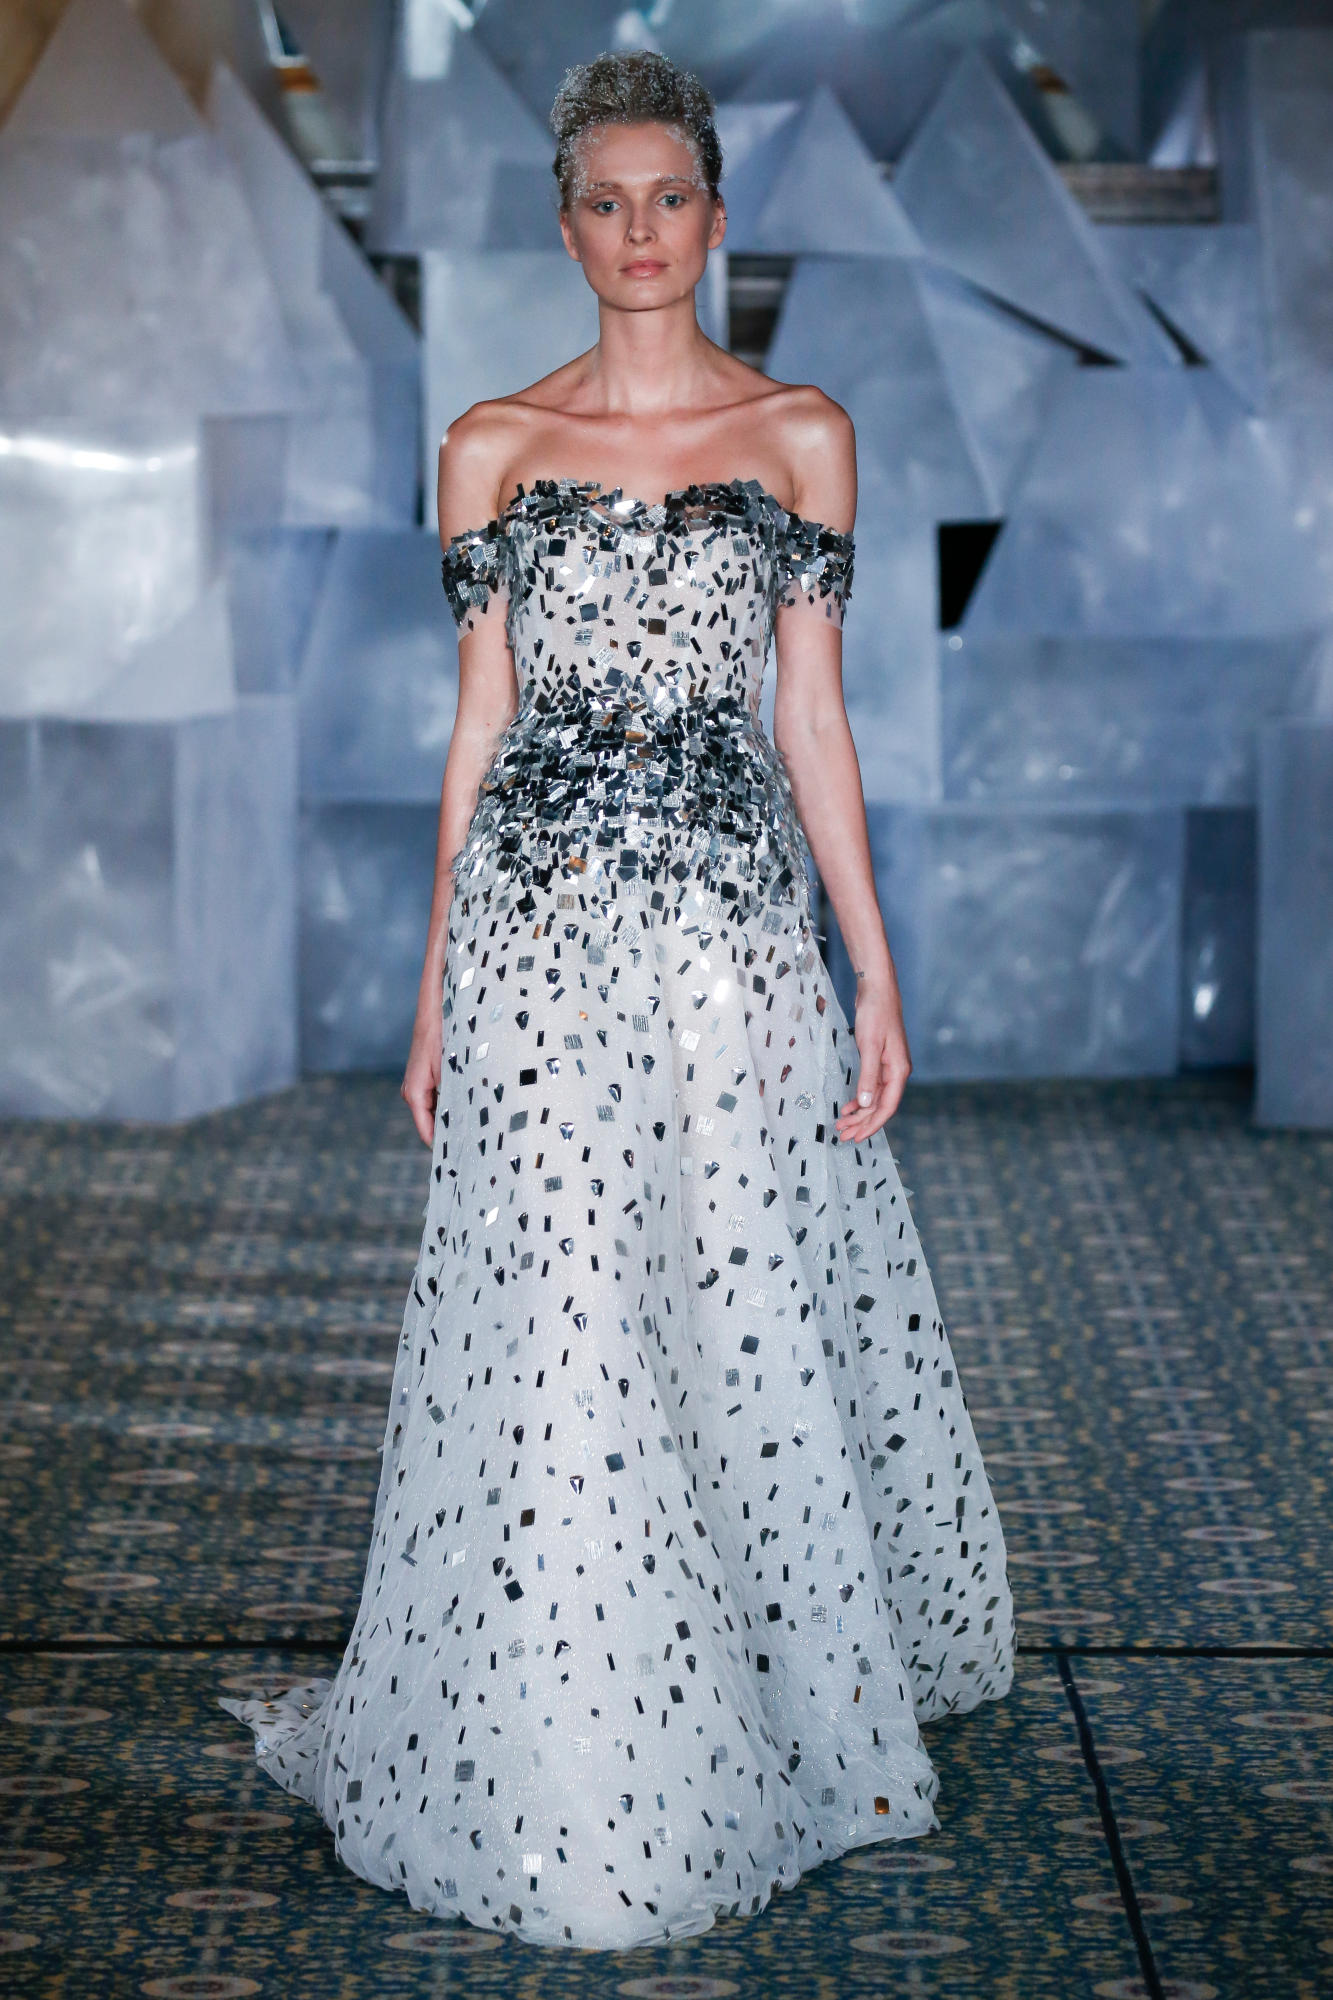 Tadashi Shoji Archives | University of Fashion Blog